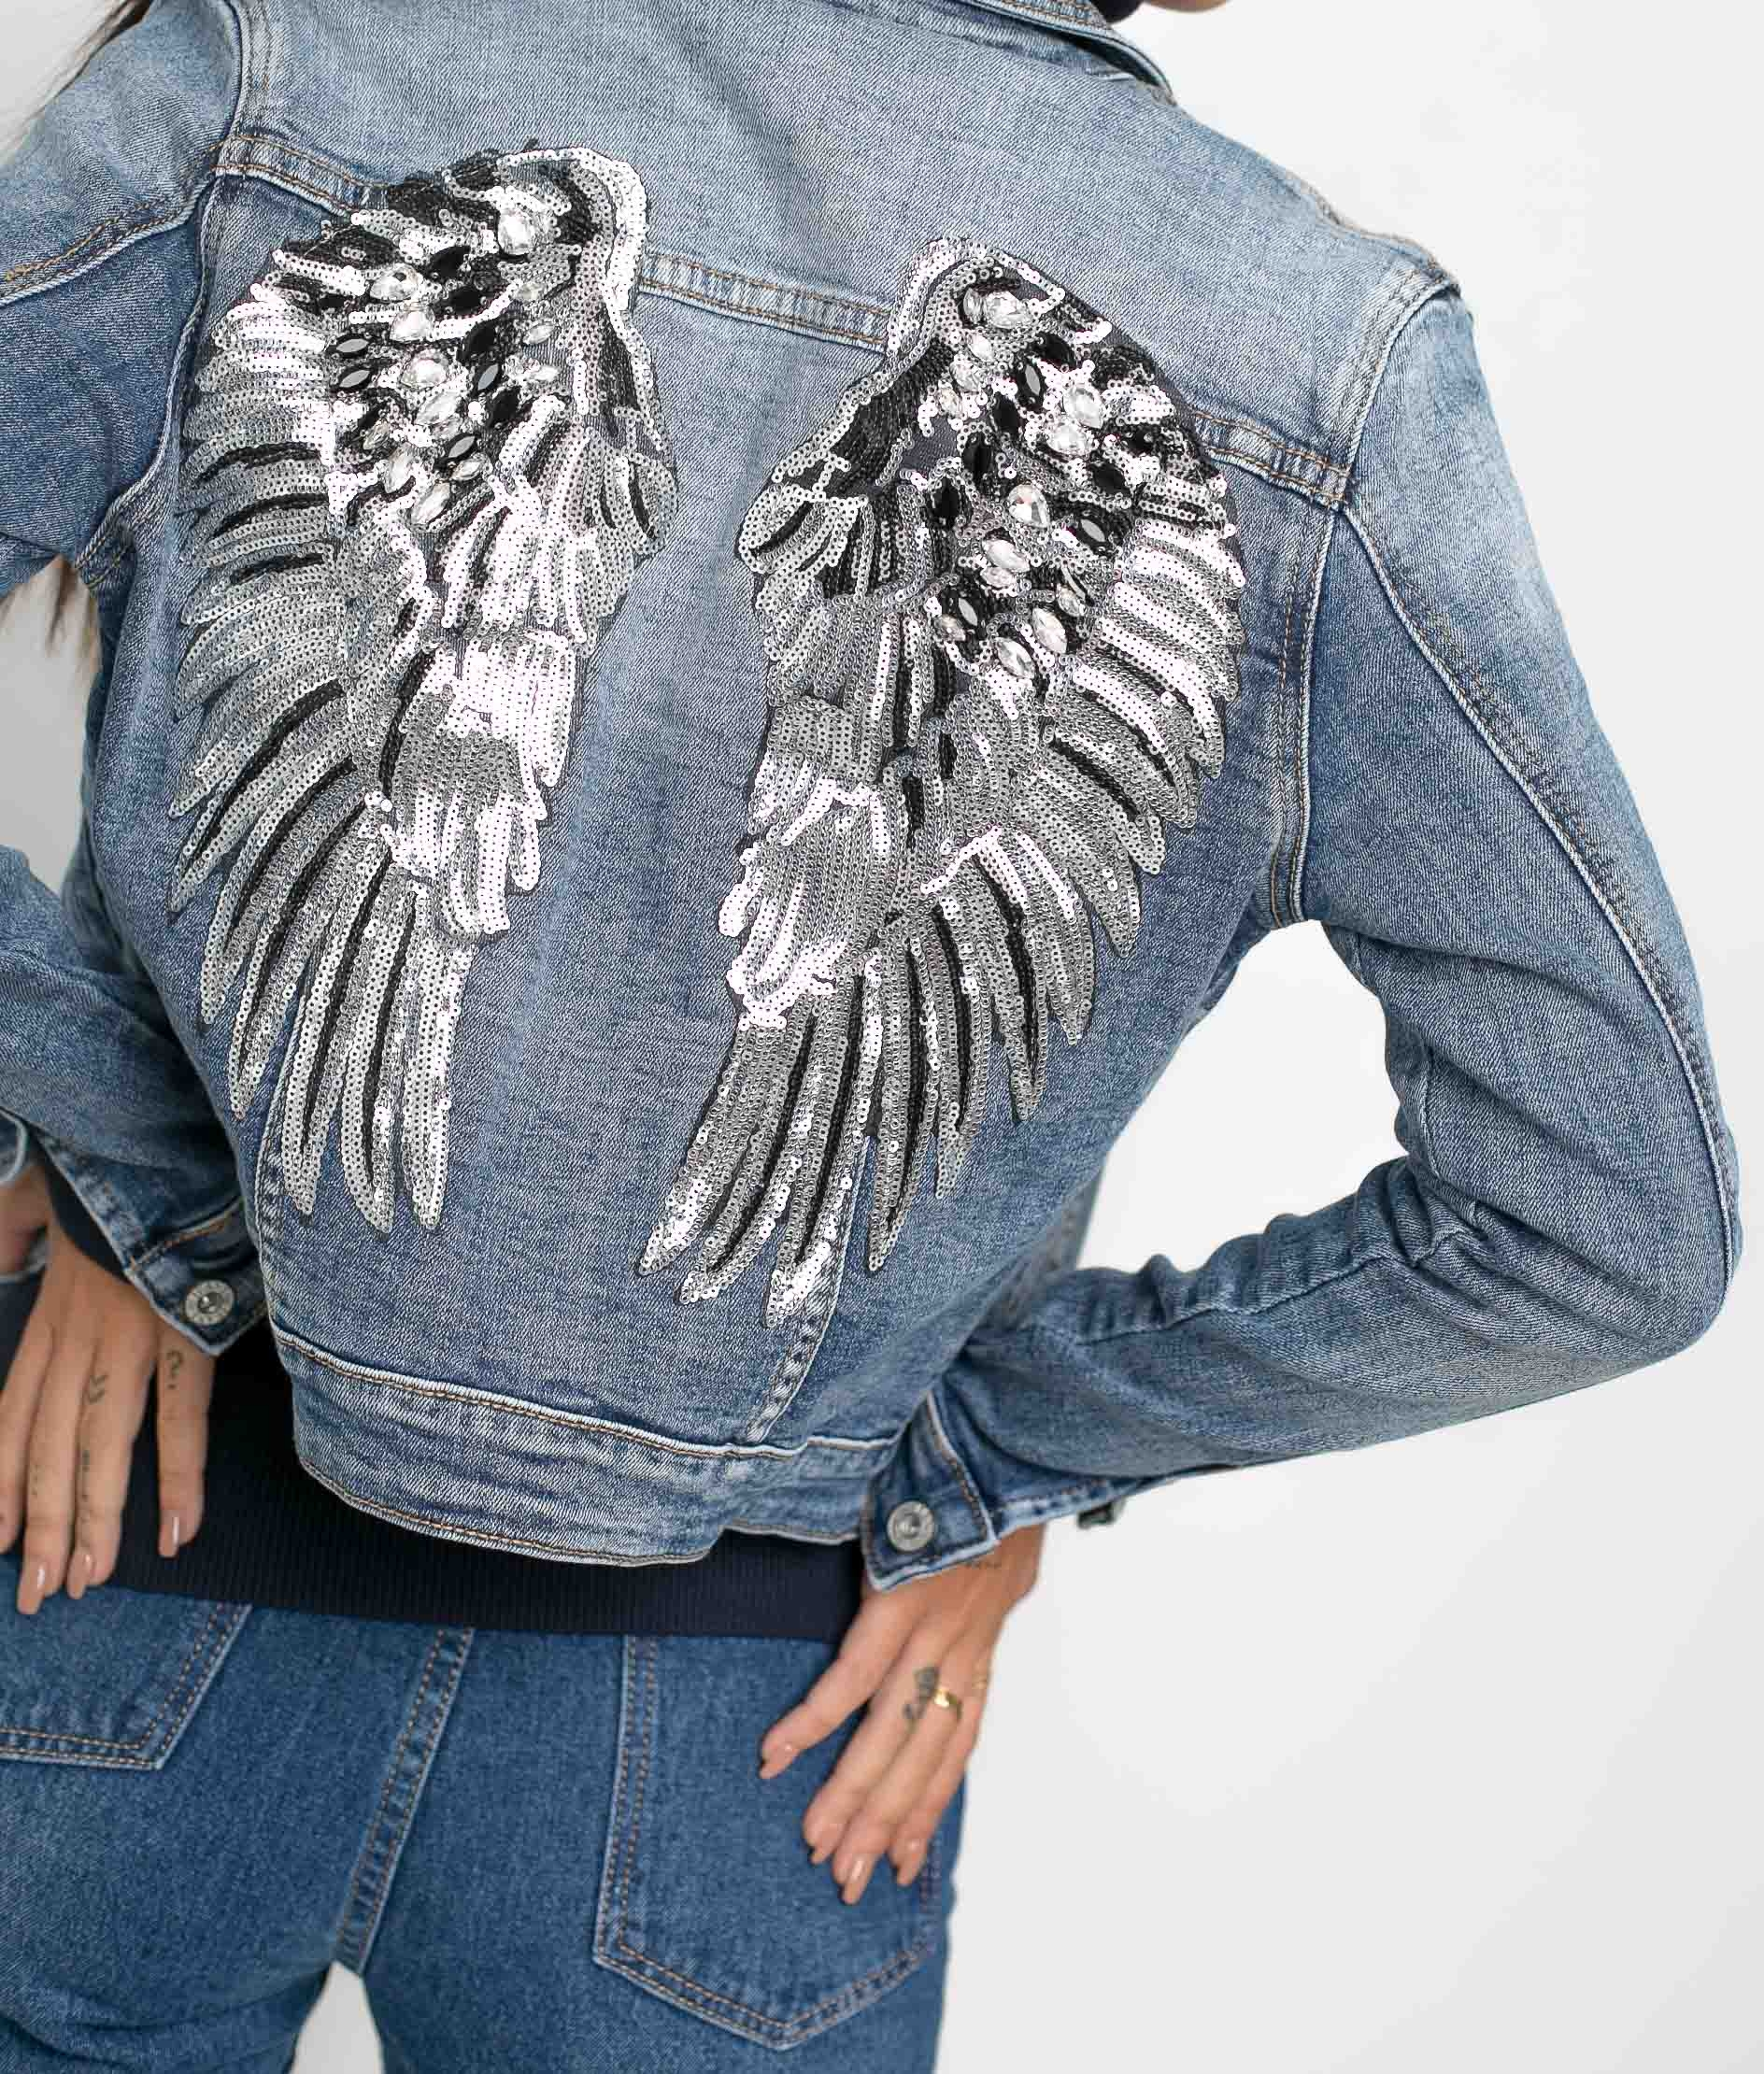 CHAQUETA ANTIOC - DENIM